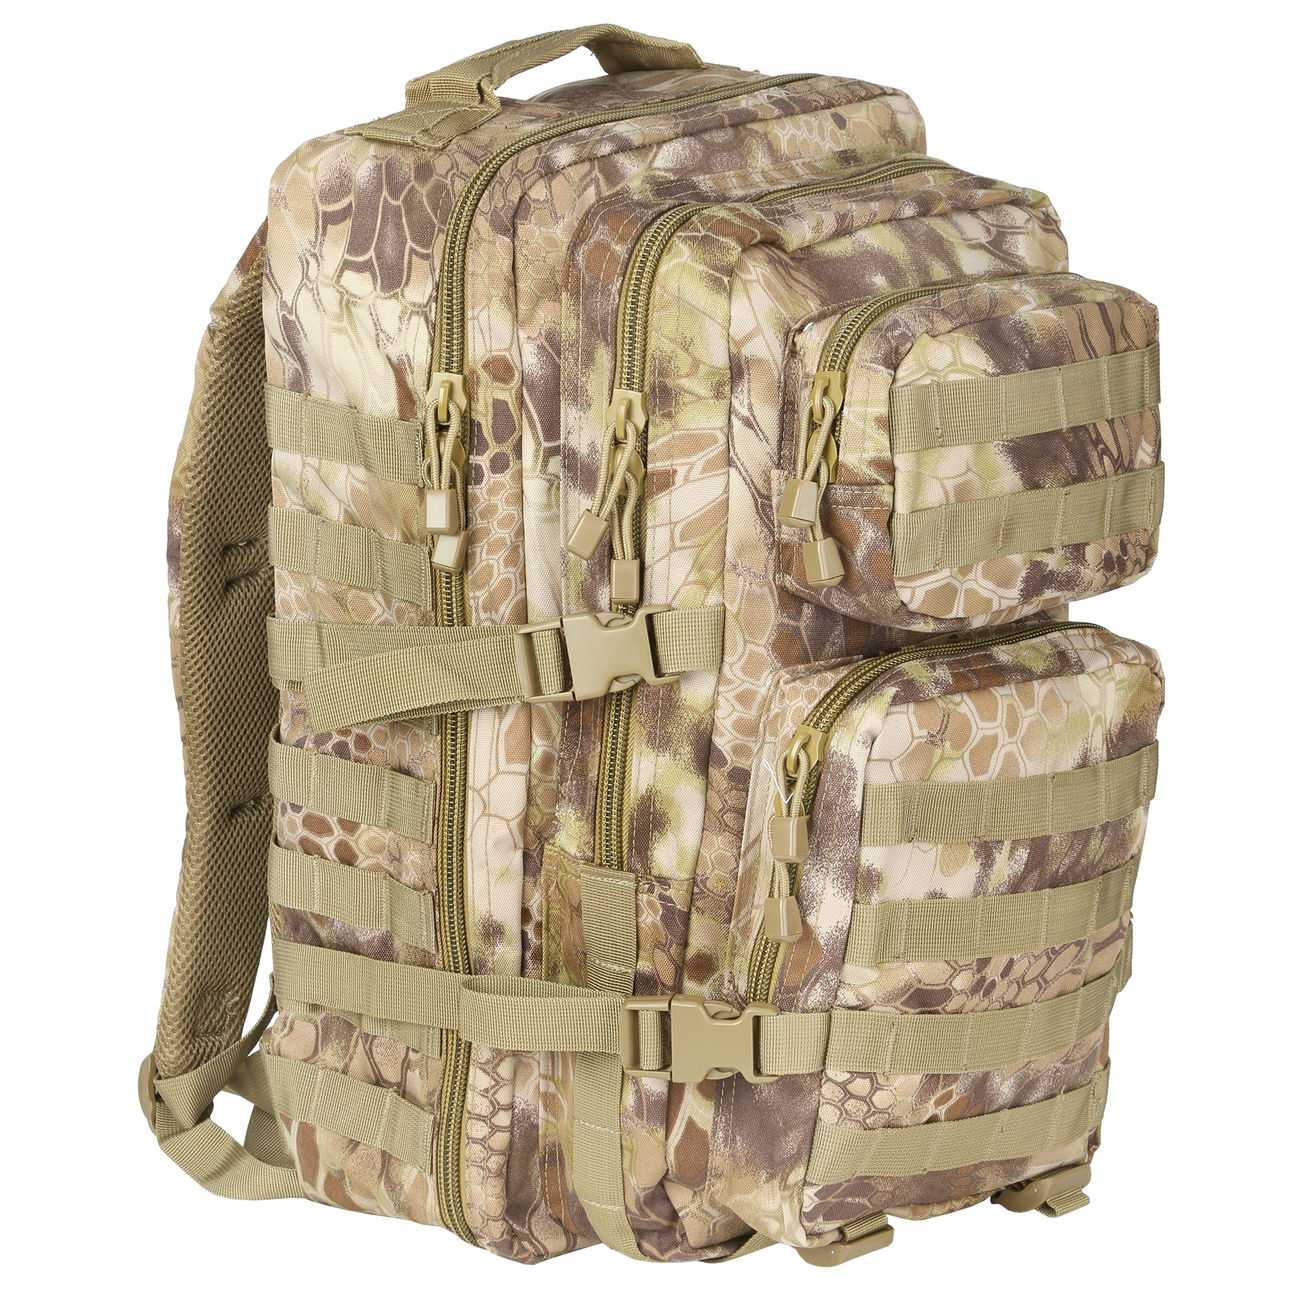 Mil-Tec Rucksack US Assault Pack II 40 Liter mandra tan 0